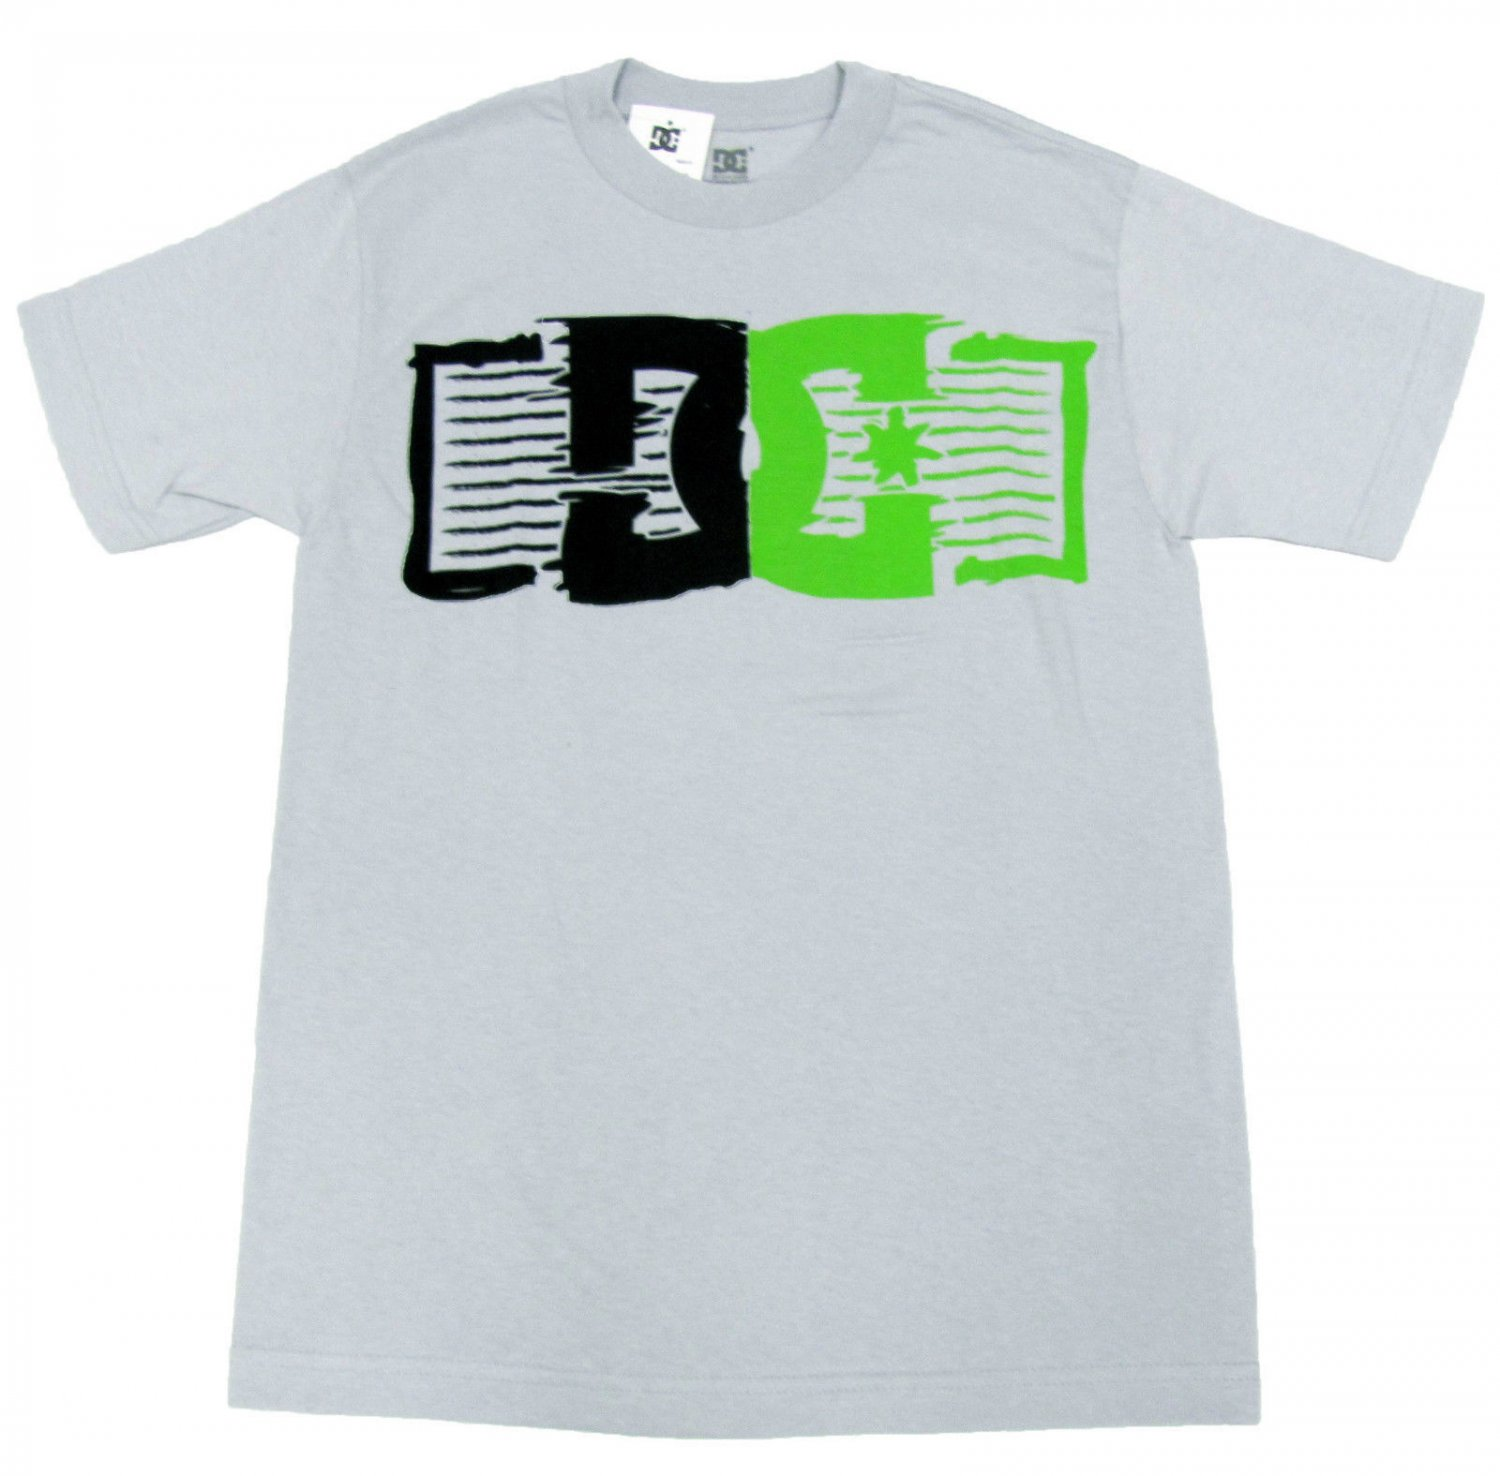 Dc Shoes Mens S Politics Tee Light Gray T-Shirt with Black and Green Logo Small